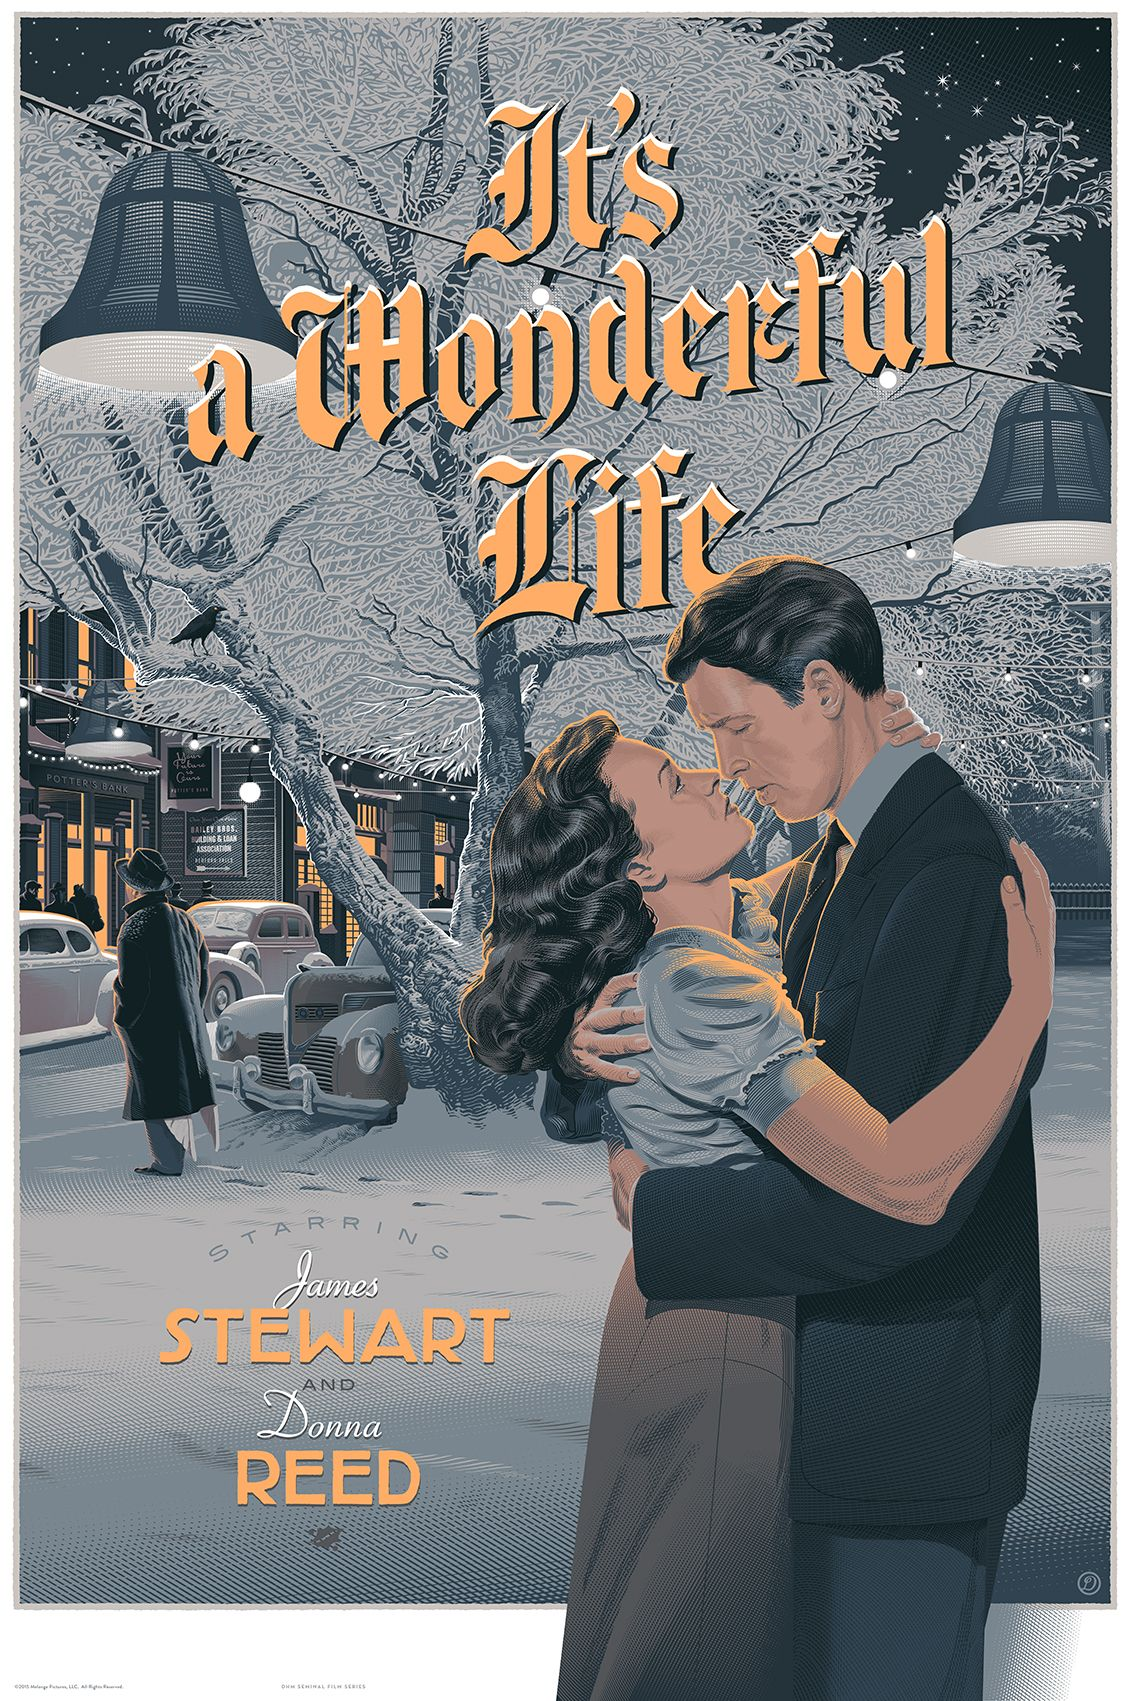 wonderful life Wonderful life is a song by english synthpop duo hurts from their debut album, happiness it was released as their debut single in denmark on 3 may 2010, and was released as their second single in the united kingdom on 22 august 2010.